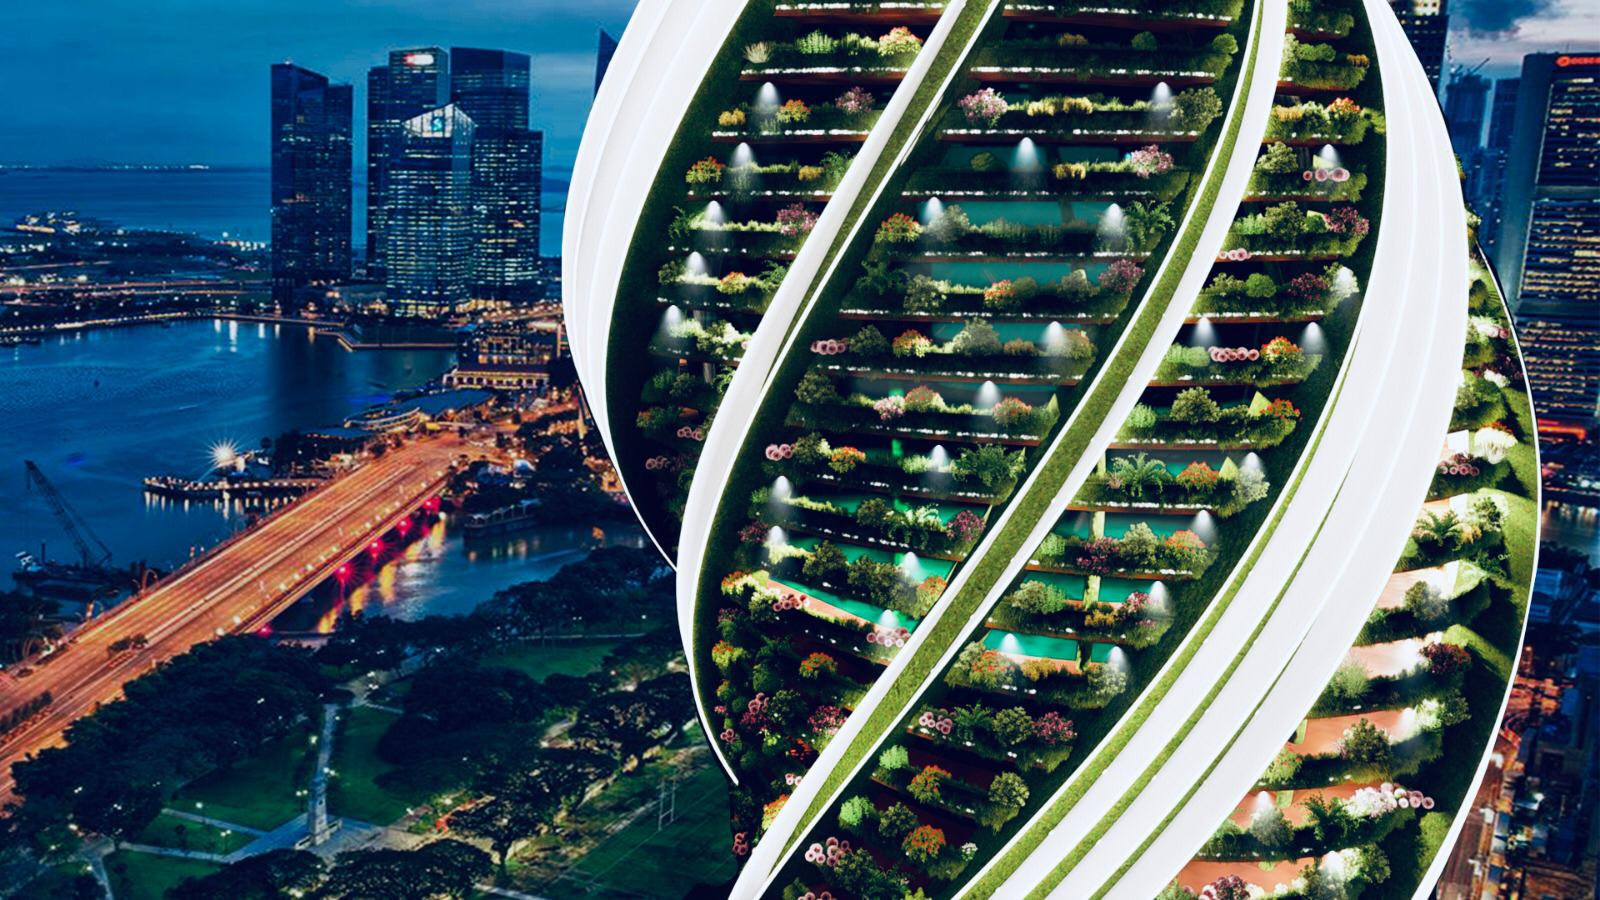 green luxury tower in Singapore at night